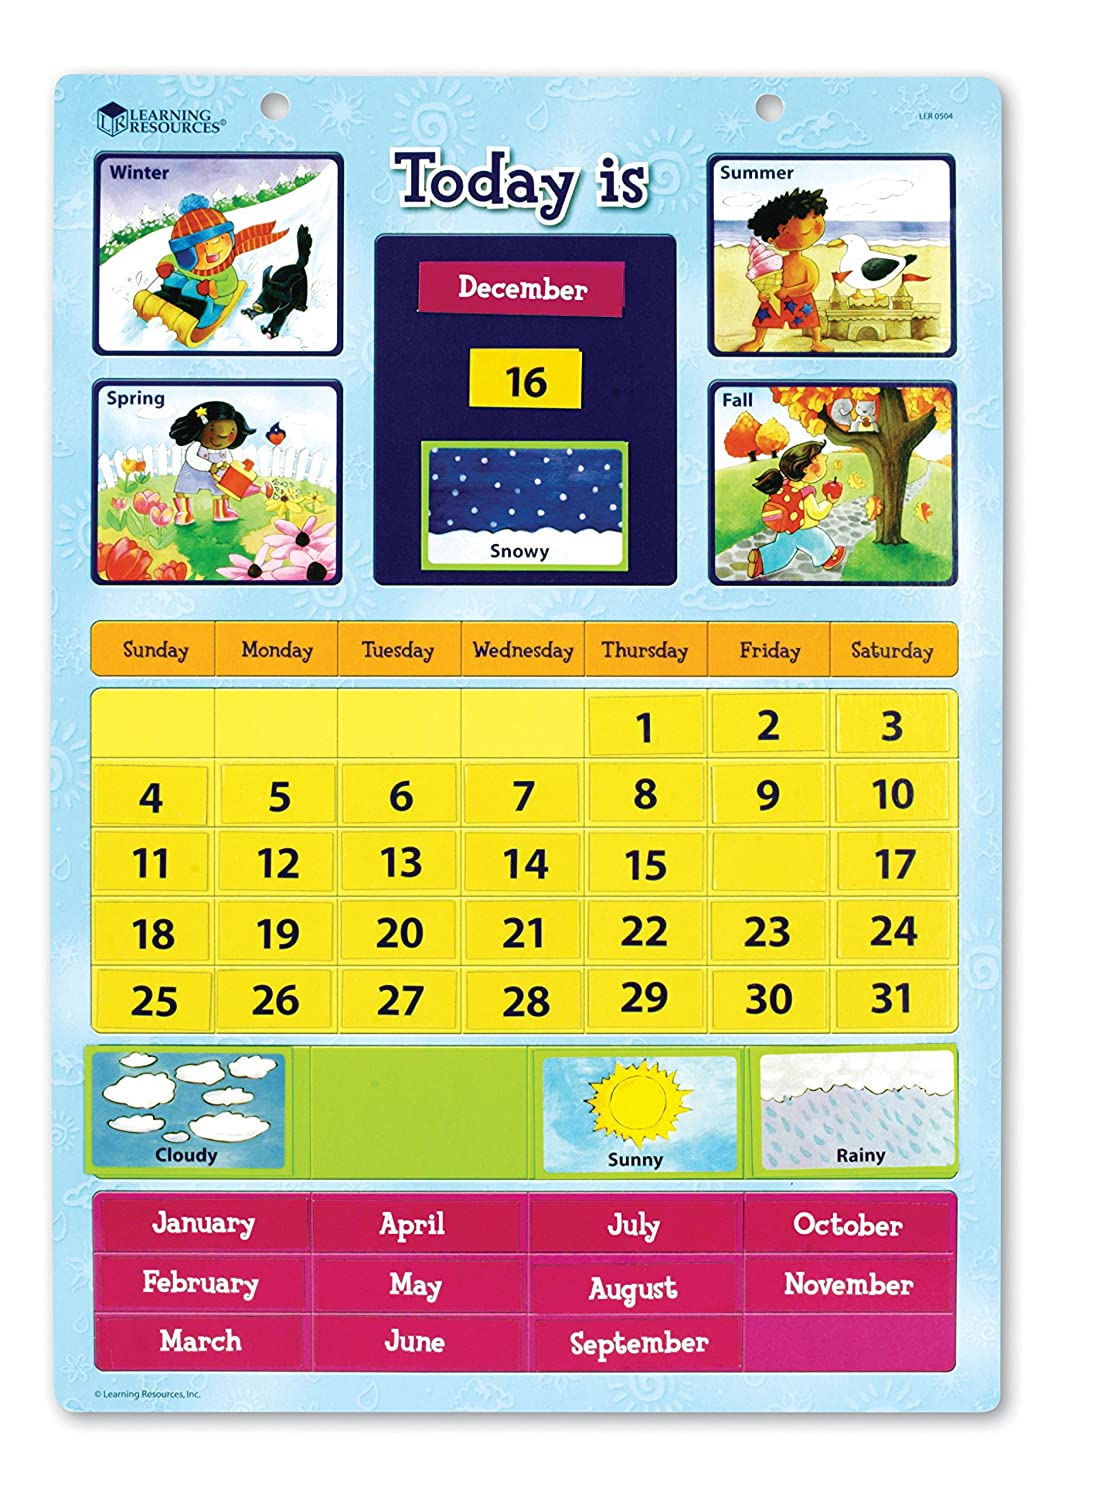 Amazon.com: Learning Resources Magnetic Learning Calendar: Toys & Games